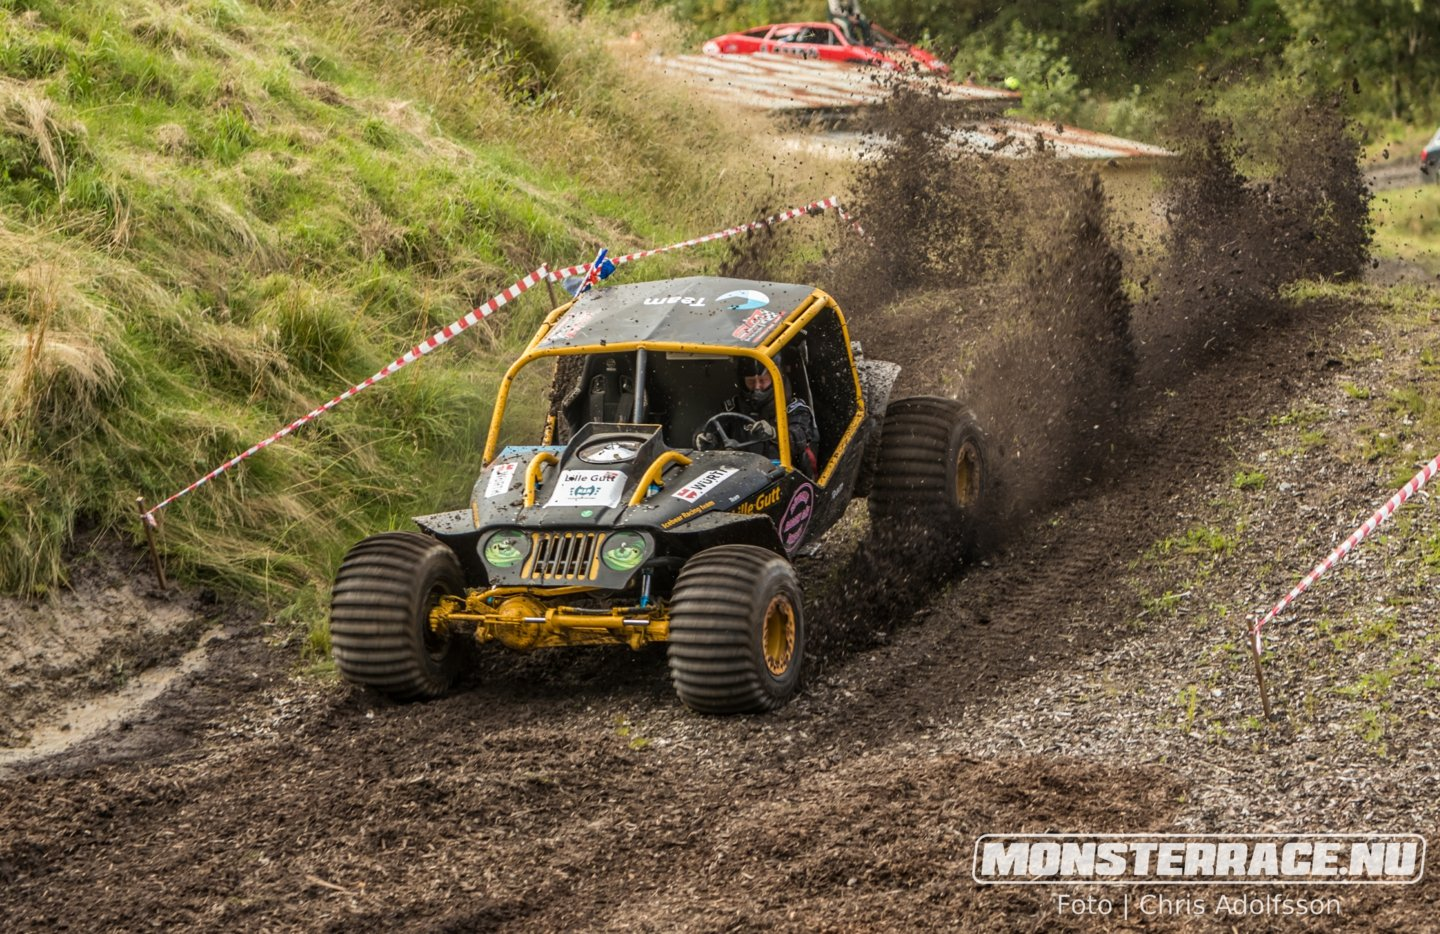 Monsterrace Ed dag 1 (108)